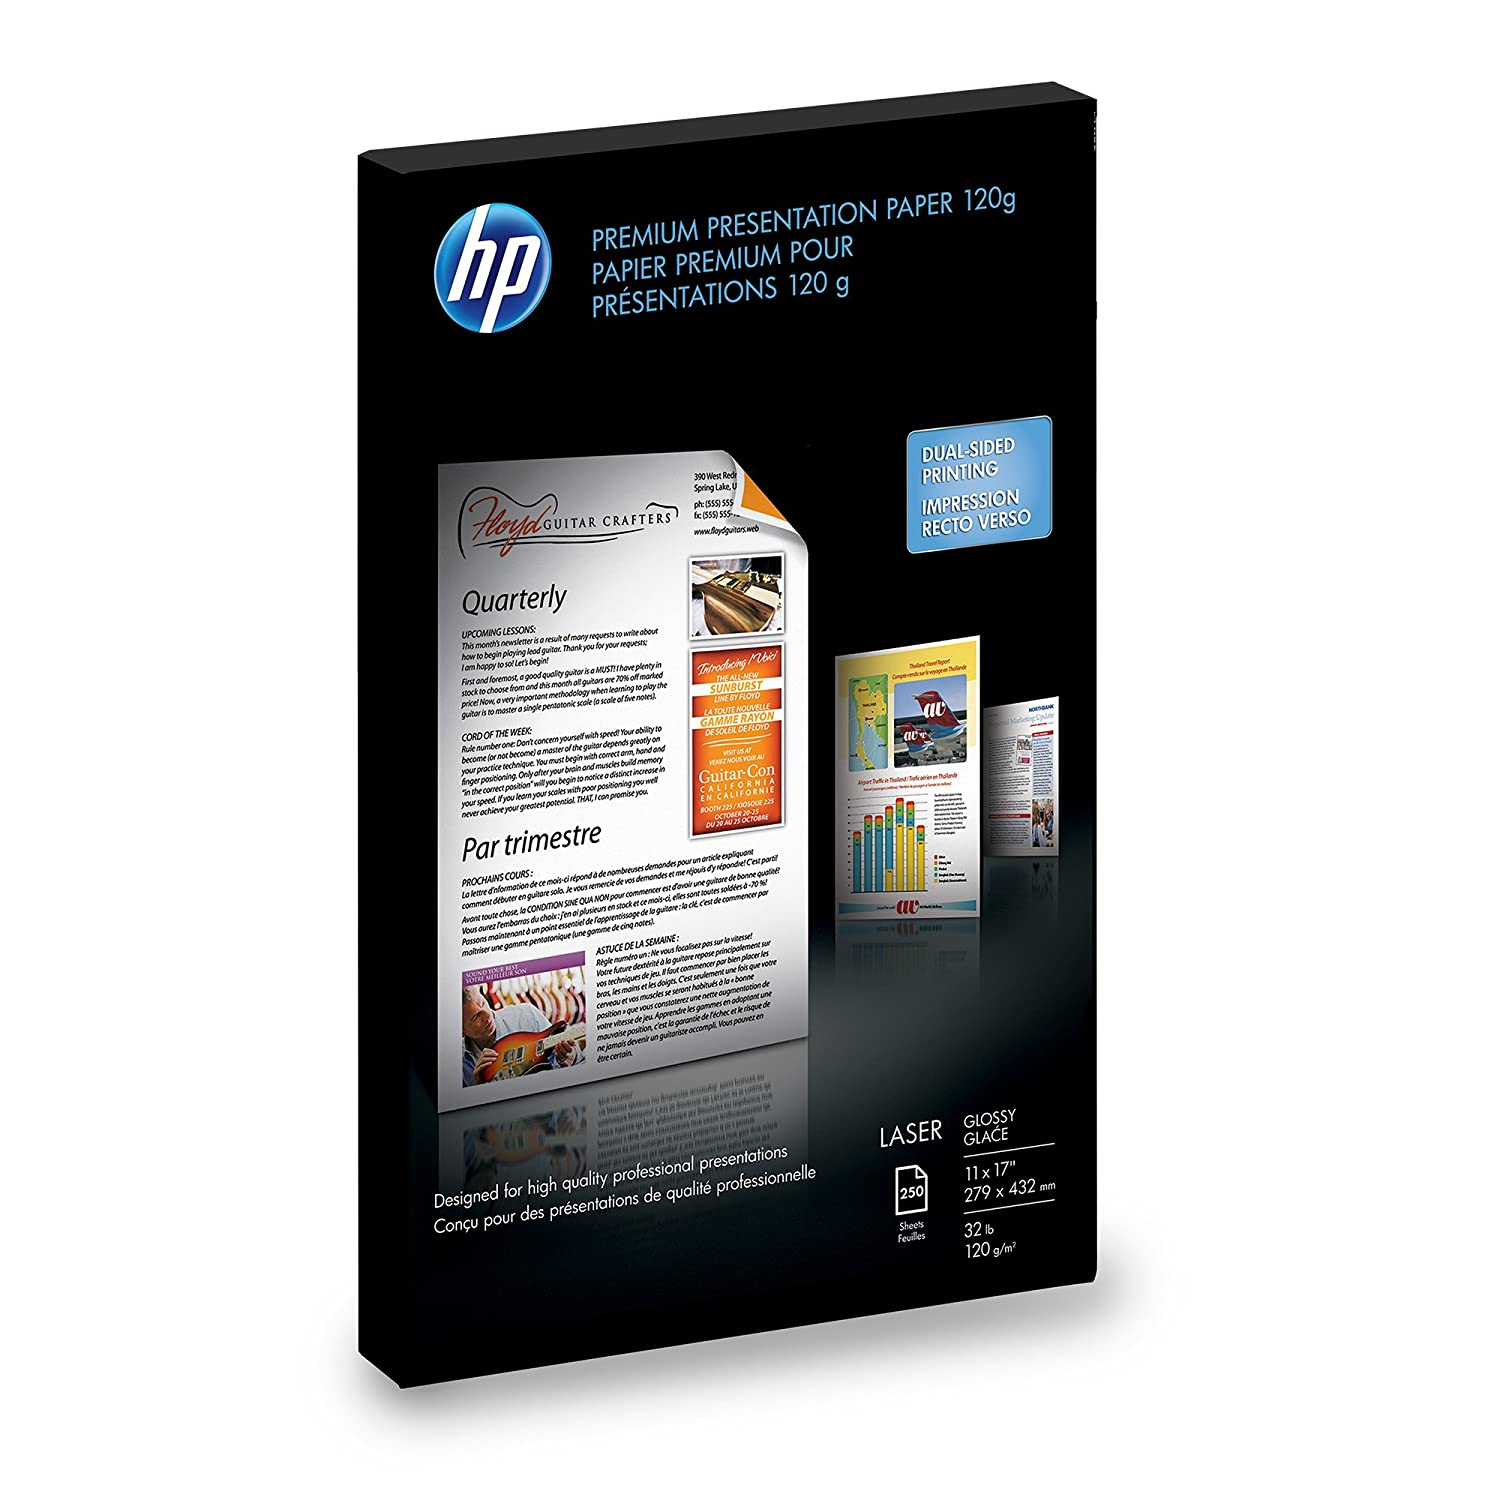 HP Color Laser Presentation Paper, Glossy (250 Sheets, 11 x 17 Inches) - Q2547A Hp - Hp Paper Office Supplies